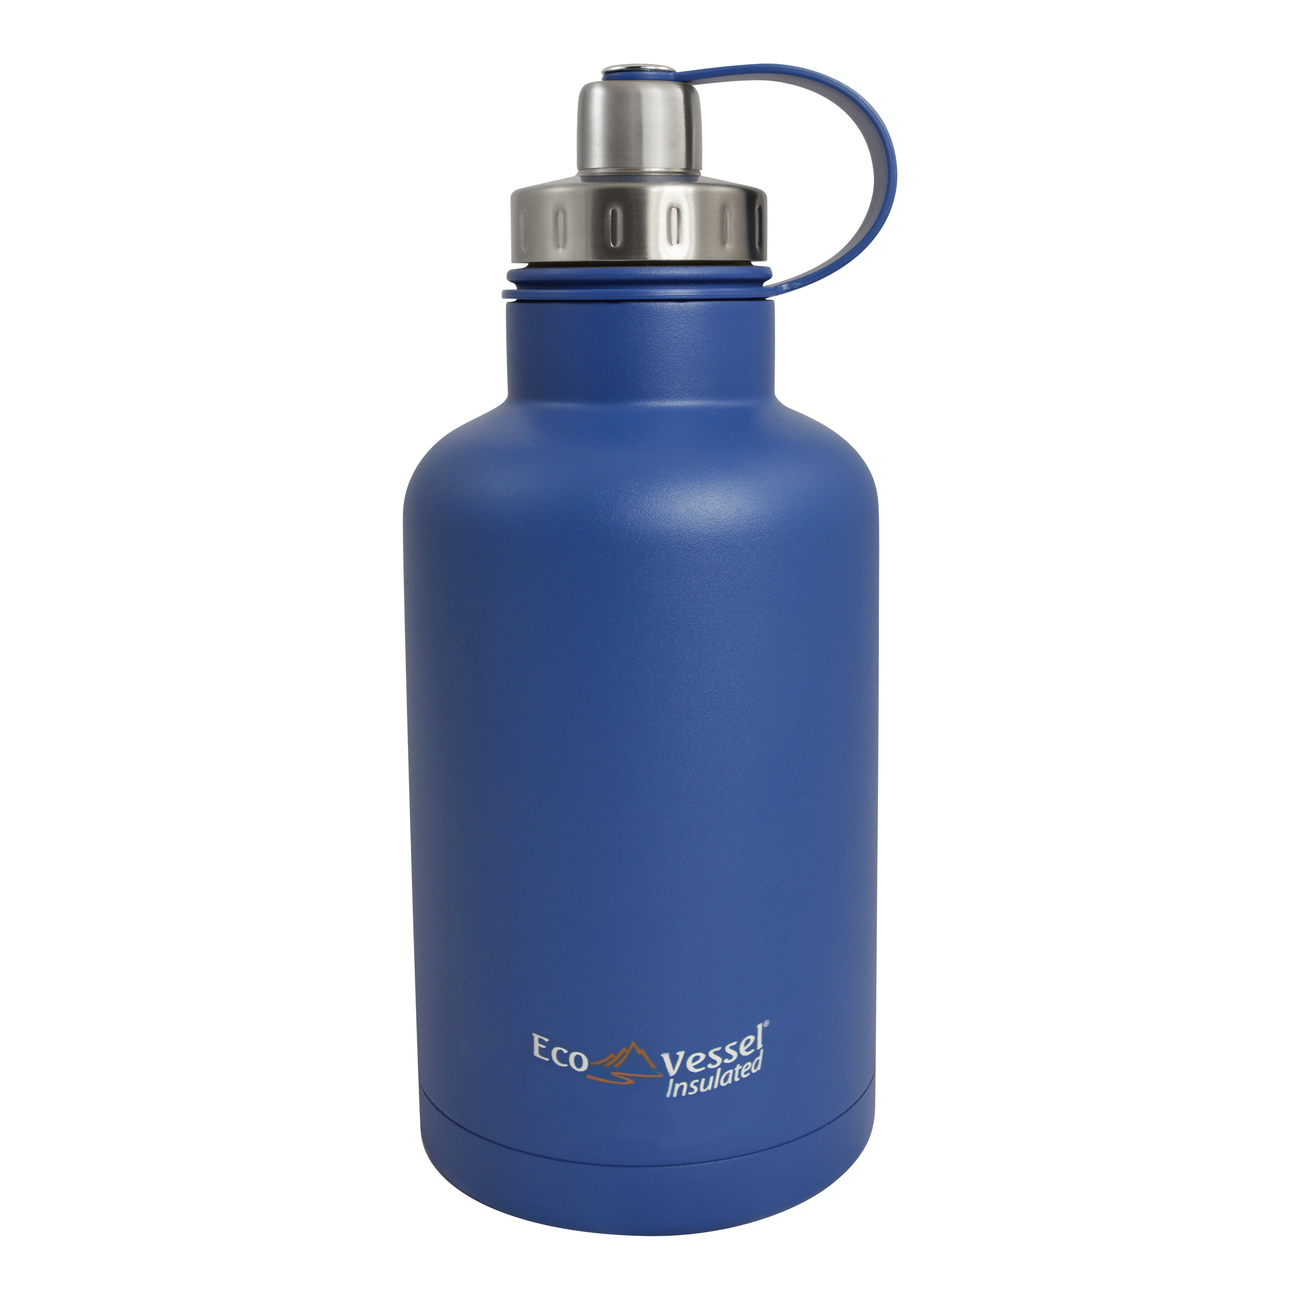 Eco Vessel Boss Hudson Blue Stainless Steel Triple Insulated 64 Ounce Growler with Infuser